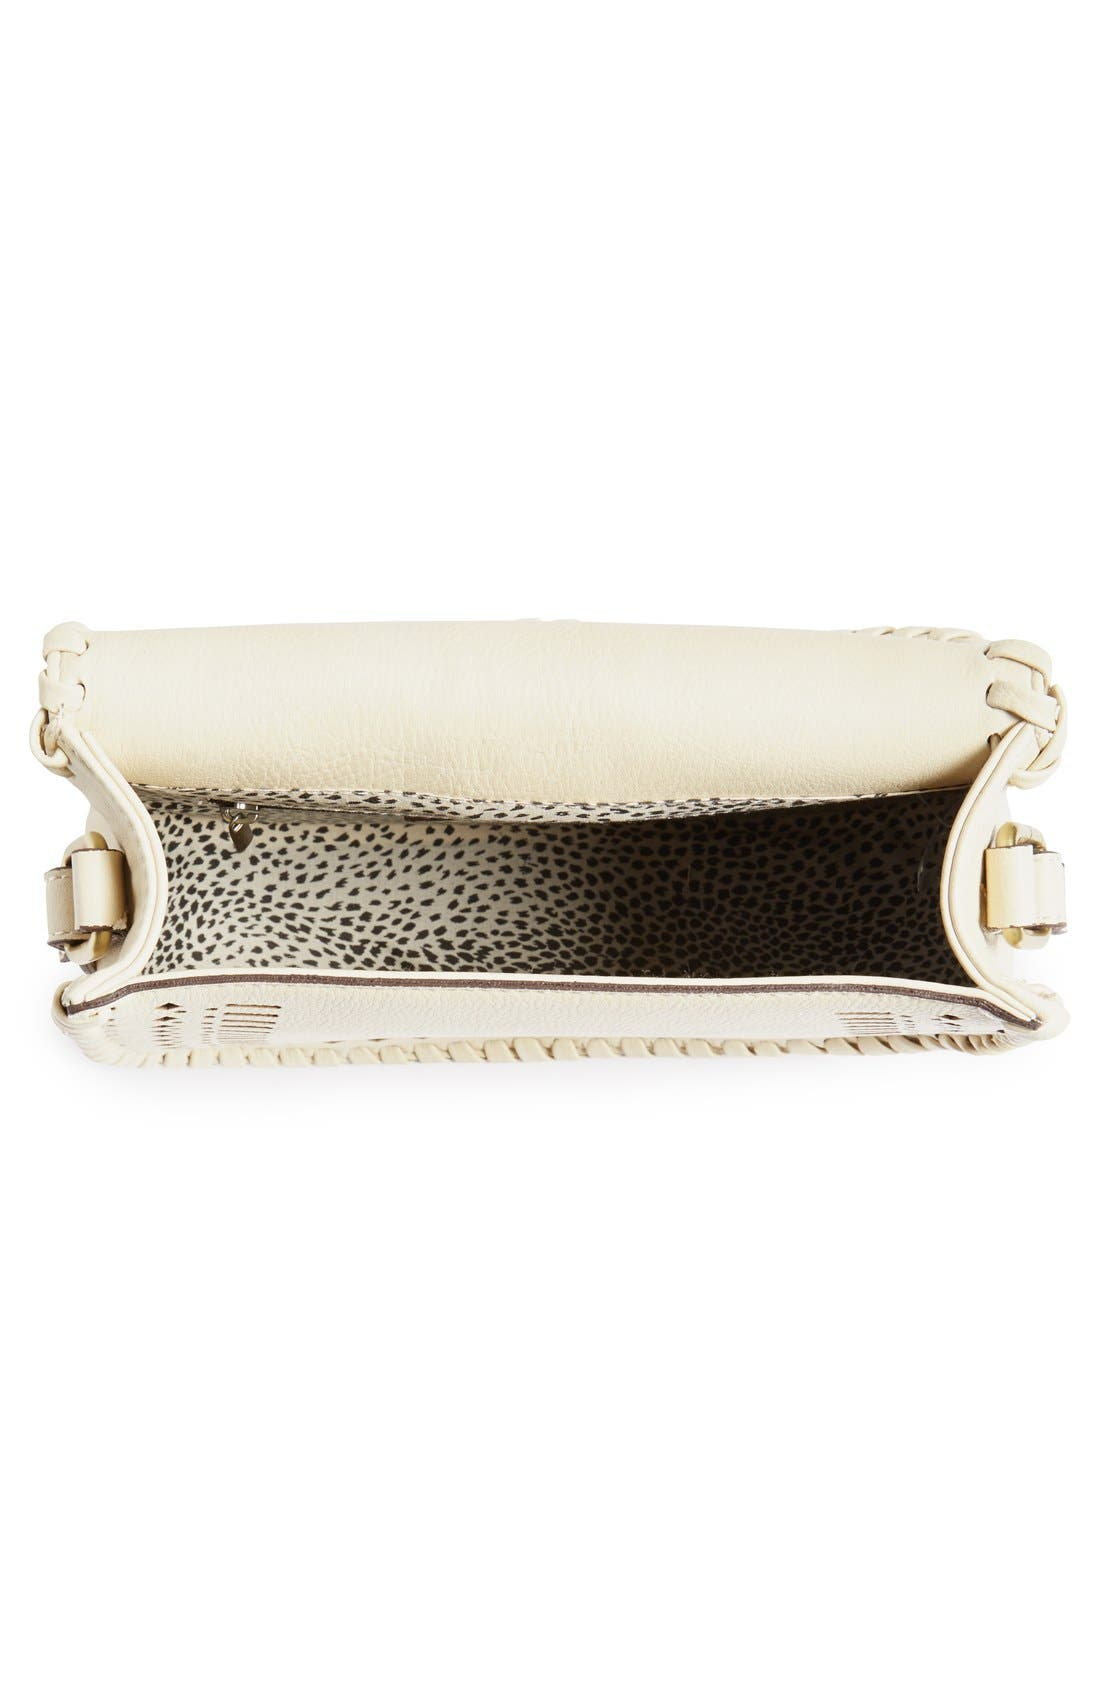 Alternate Image 3  - Sole Society 'Kianna' Perforated Faux Leather Crossbody Bag